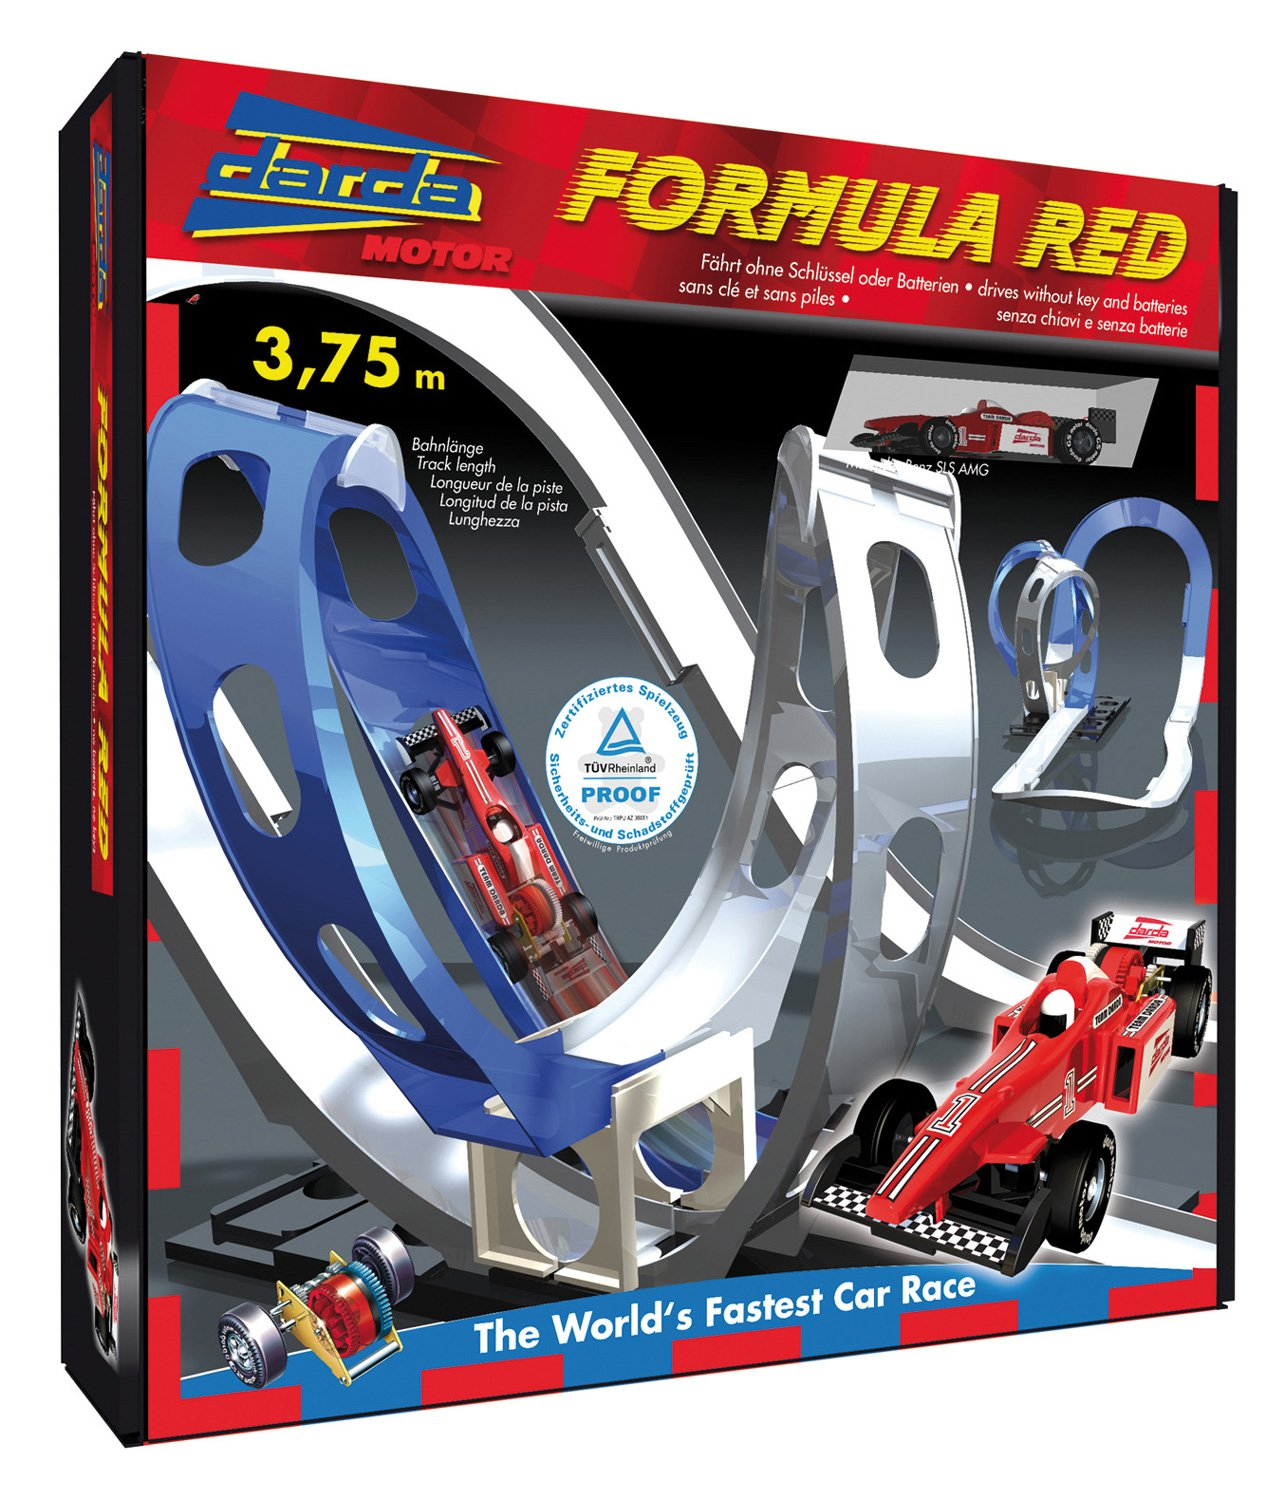 Darda Formula Red circuit